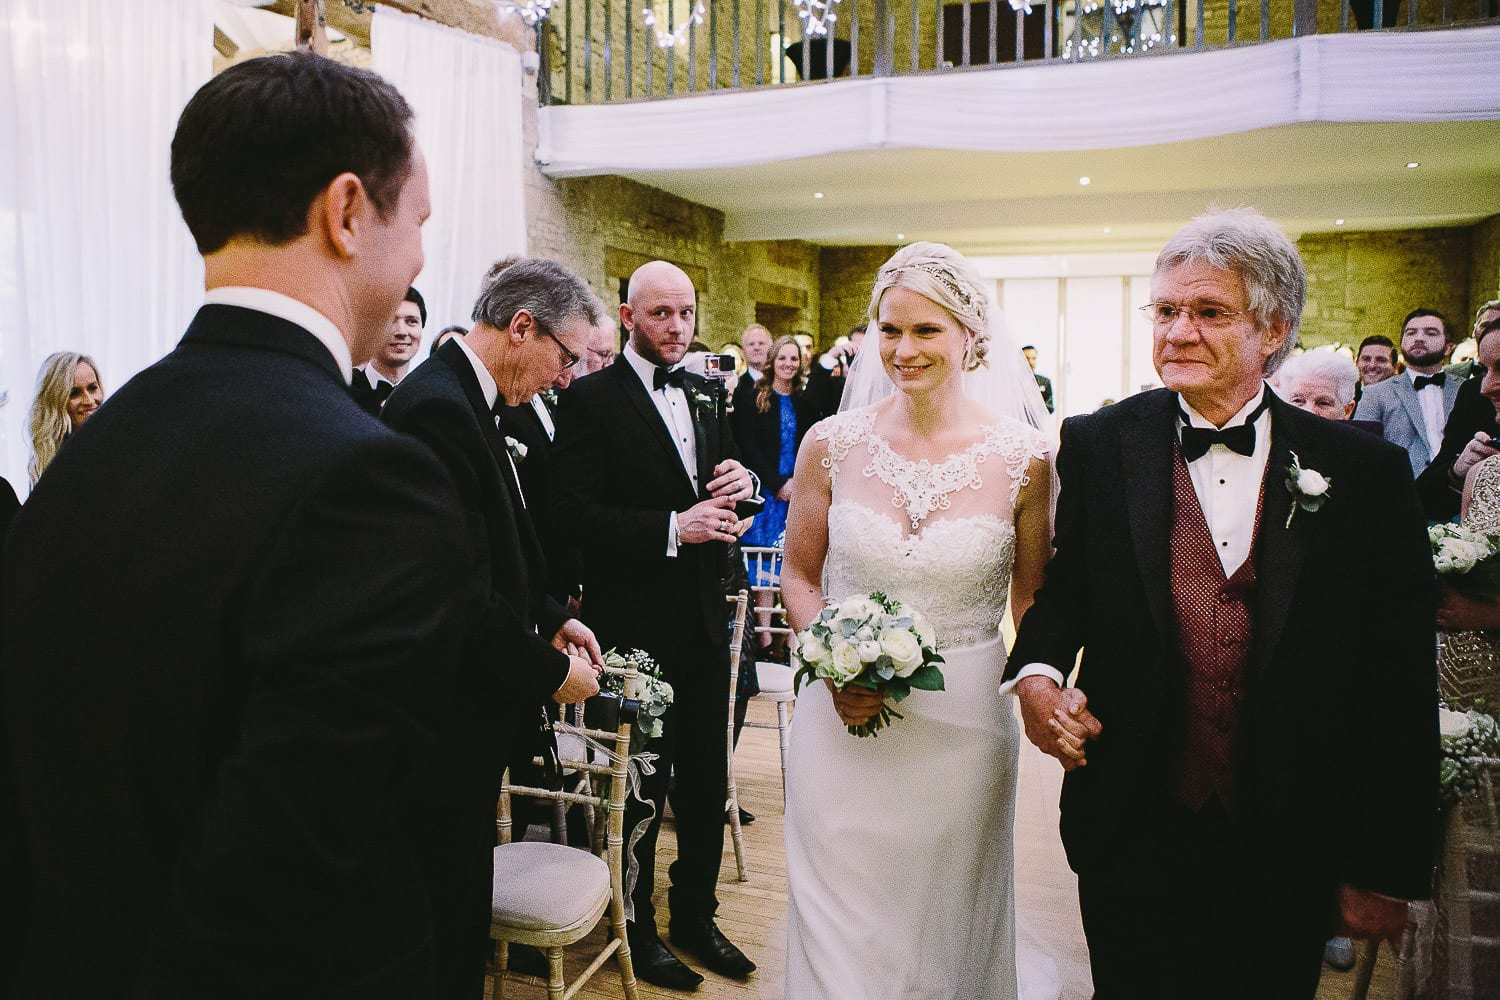 Bride and her father arriving at front for ceremony